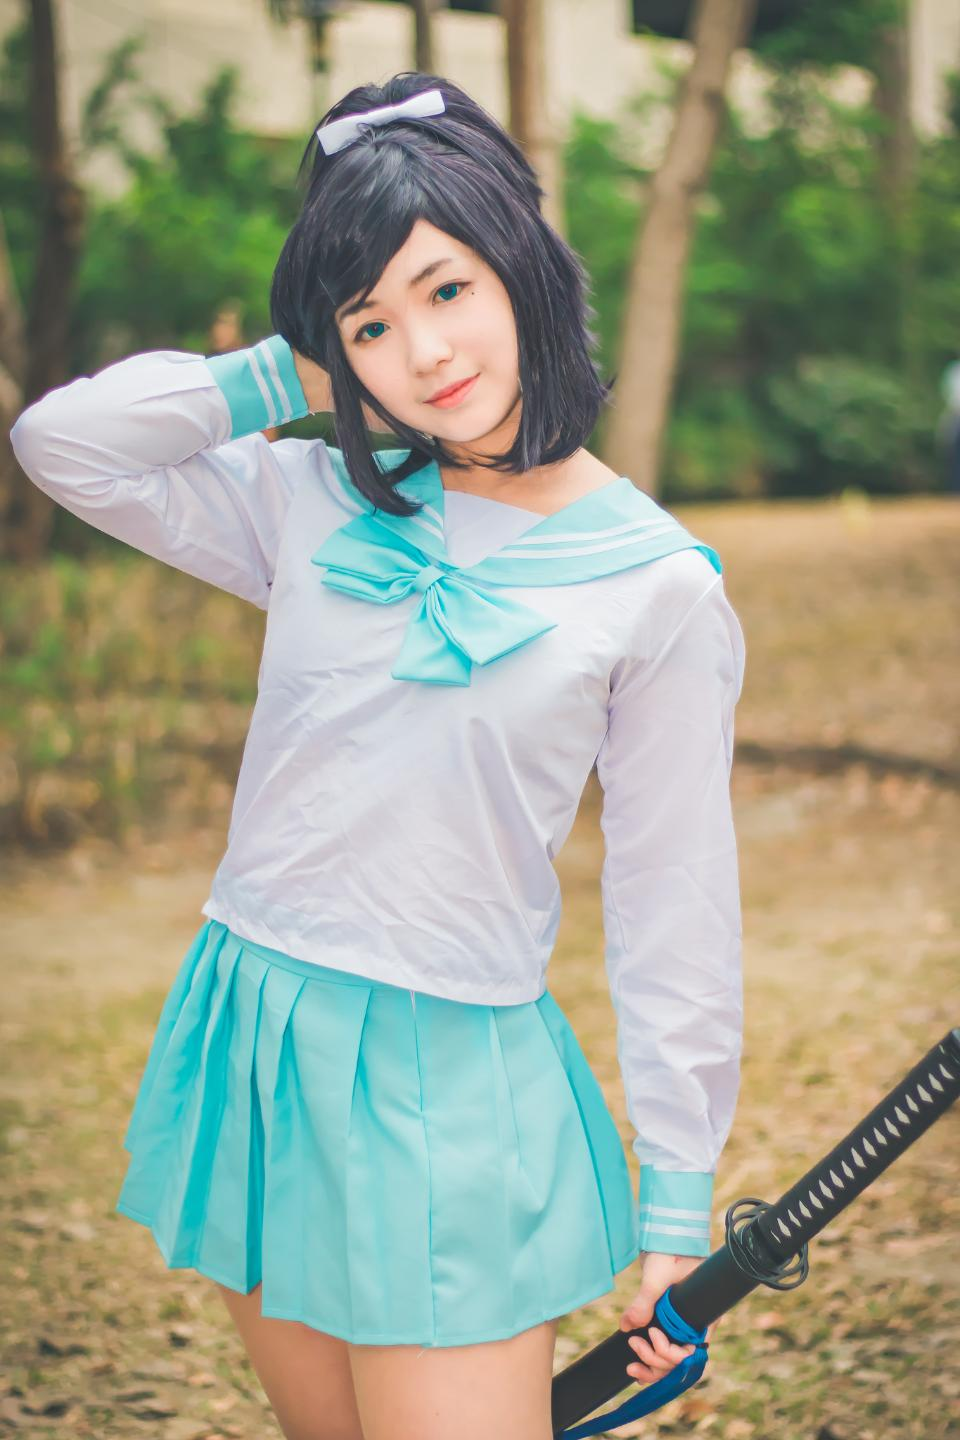 Cute Asian cosplayers dress up